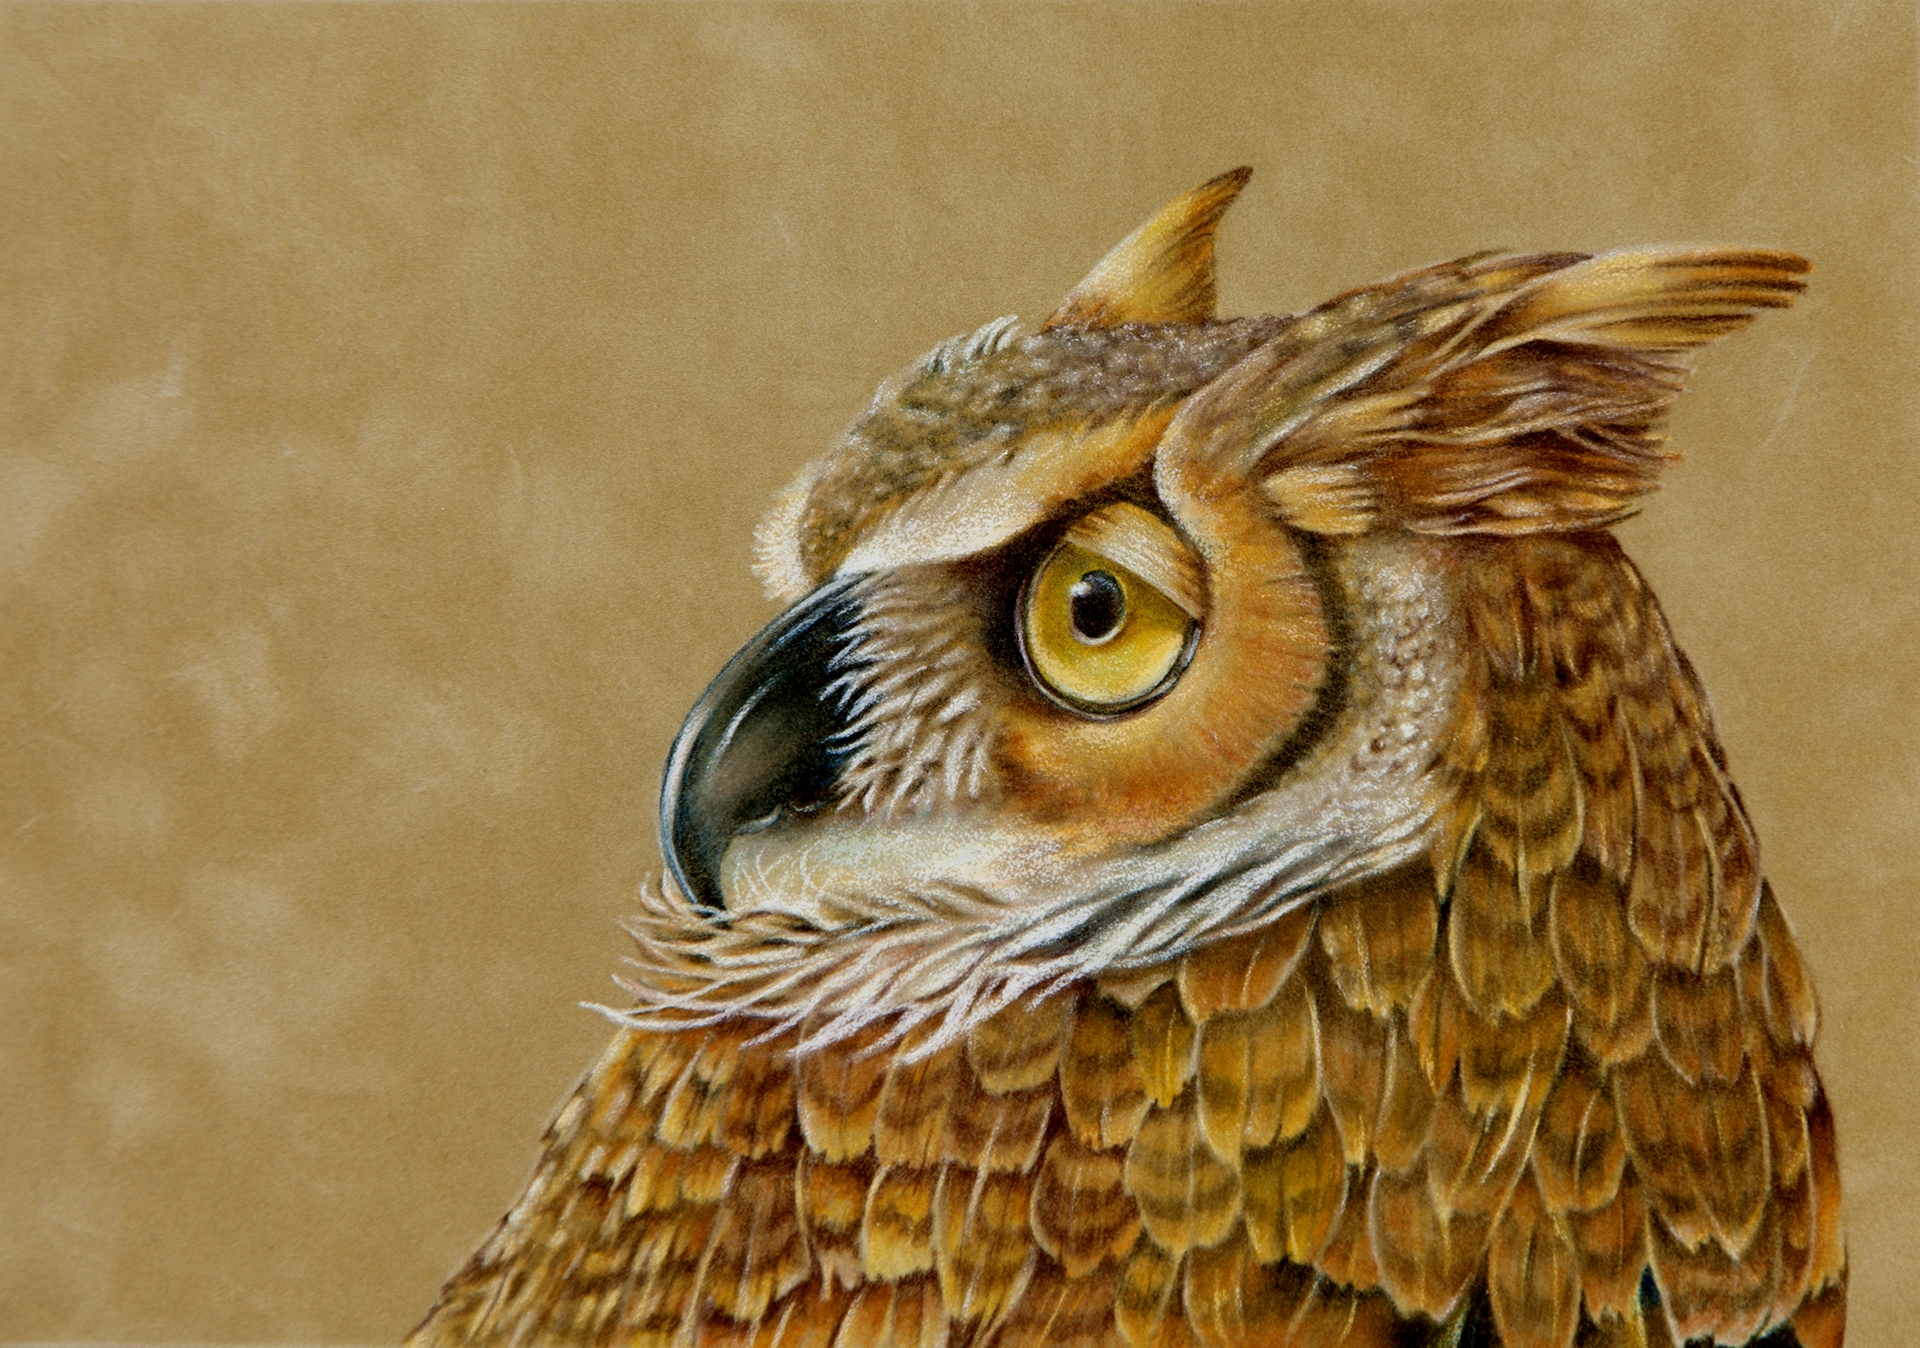 Class Series - Colored Pencil on Suede: A Blender's Delight (Great Horned Owl)